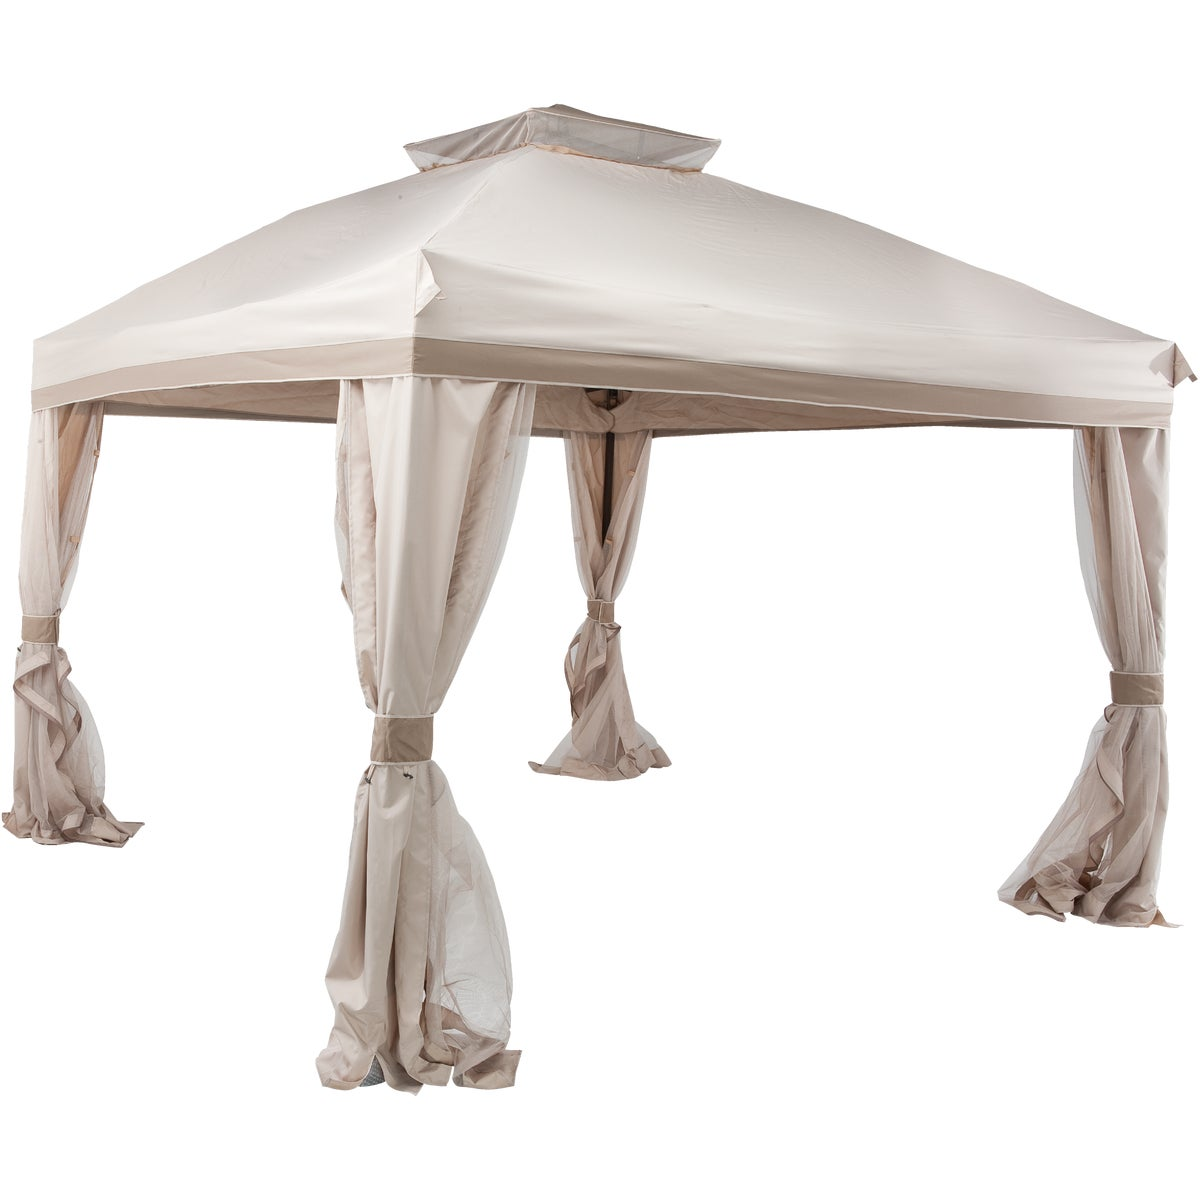 10X10 POP-UP GAZEBO - 5JGZ0120224 by Pacific Casual   Jgz